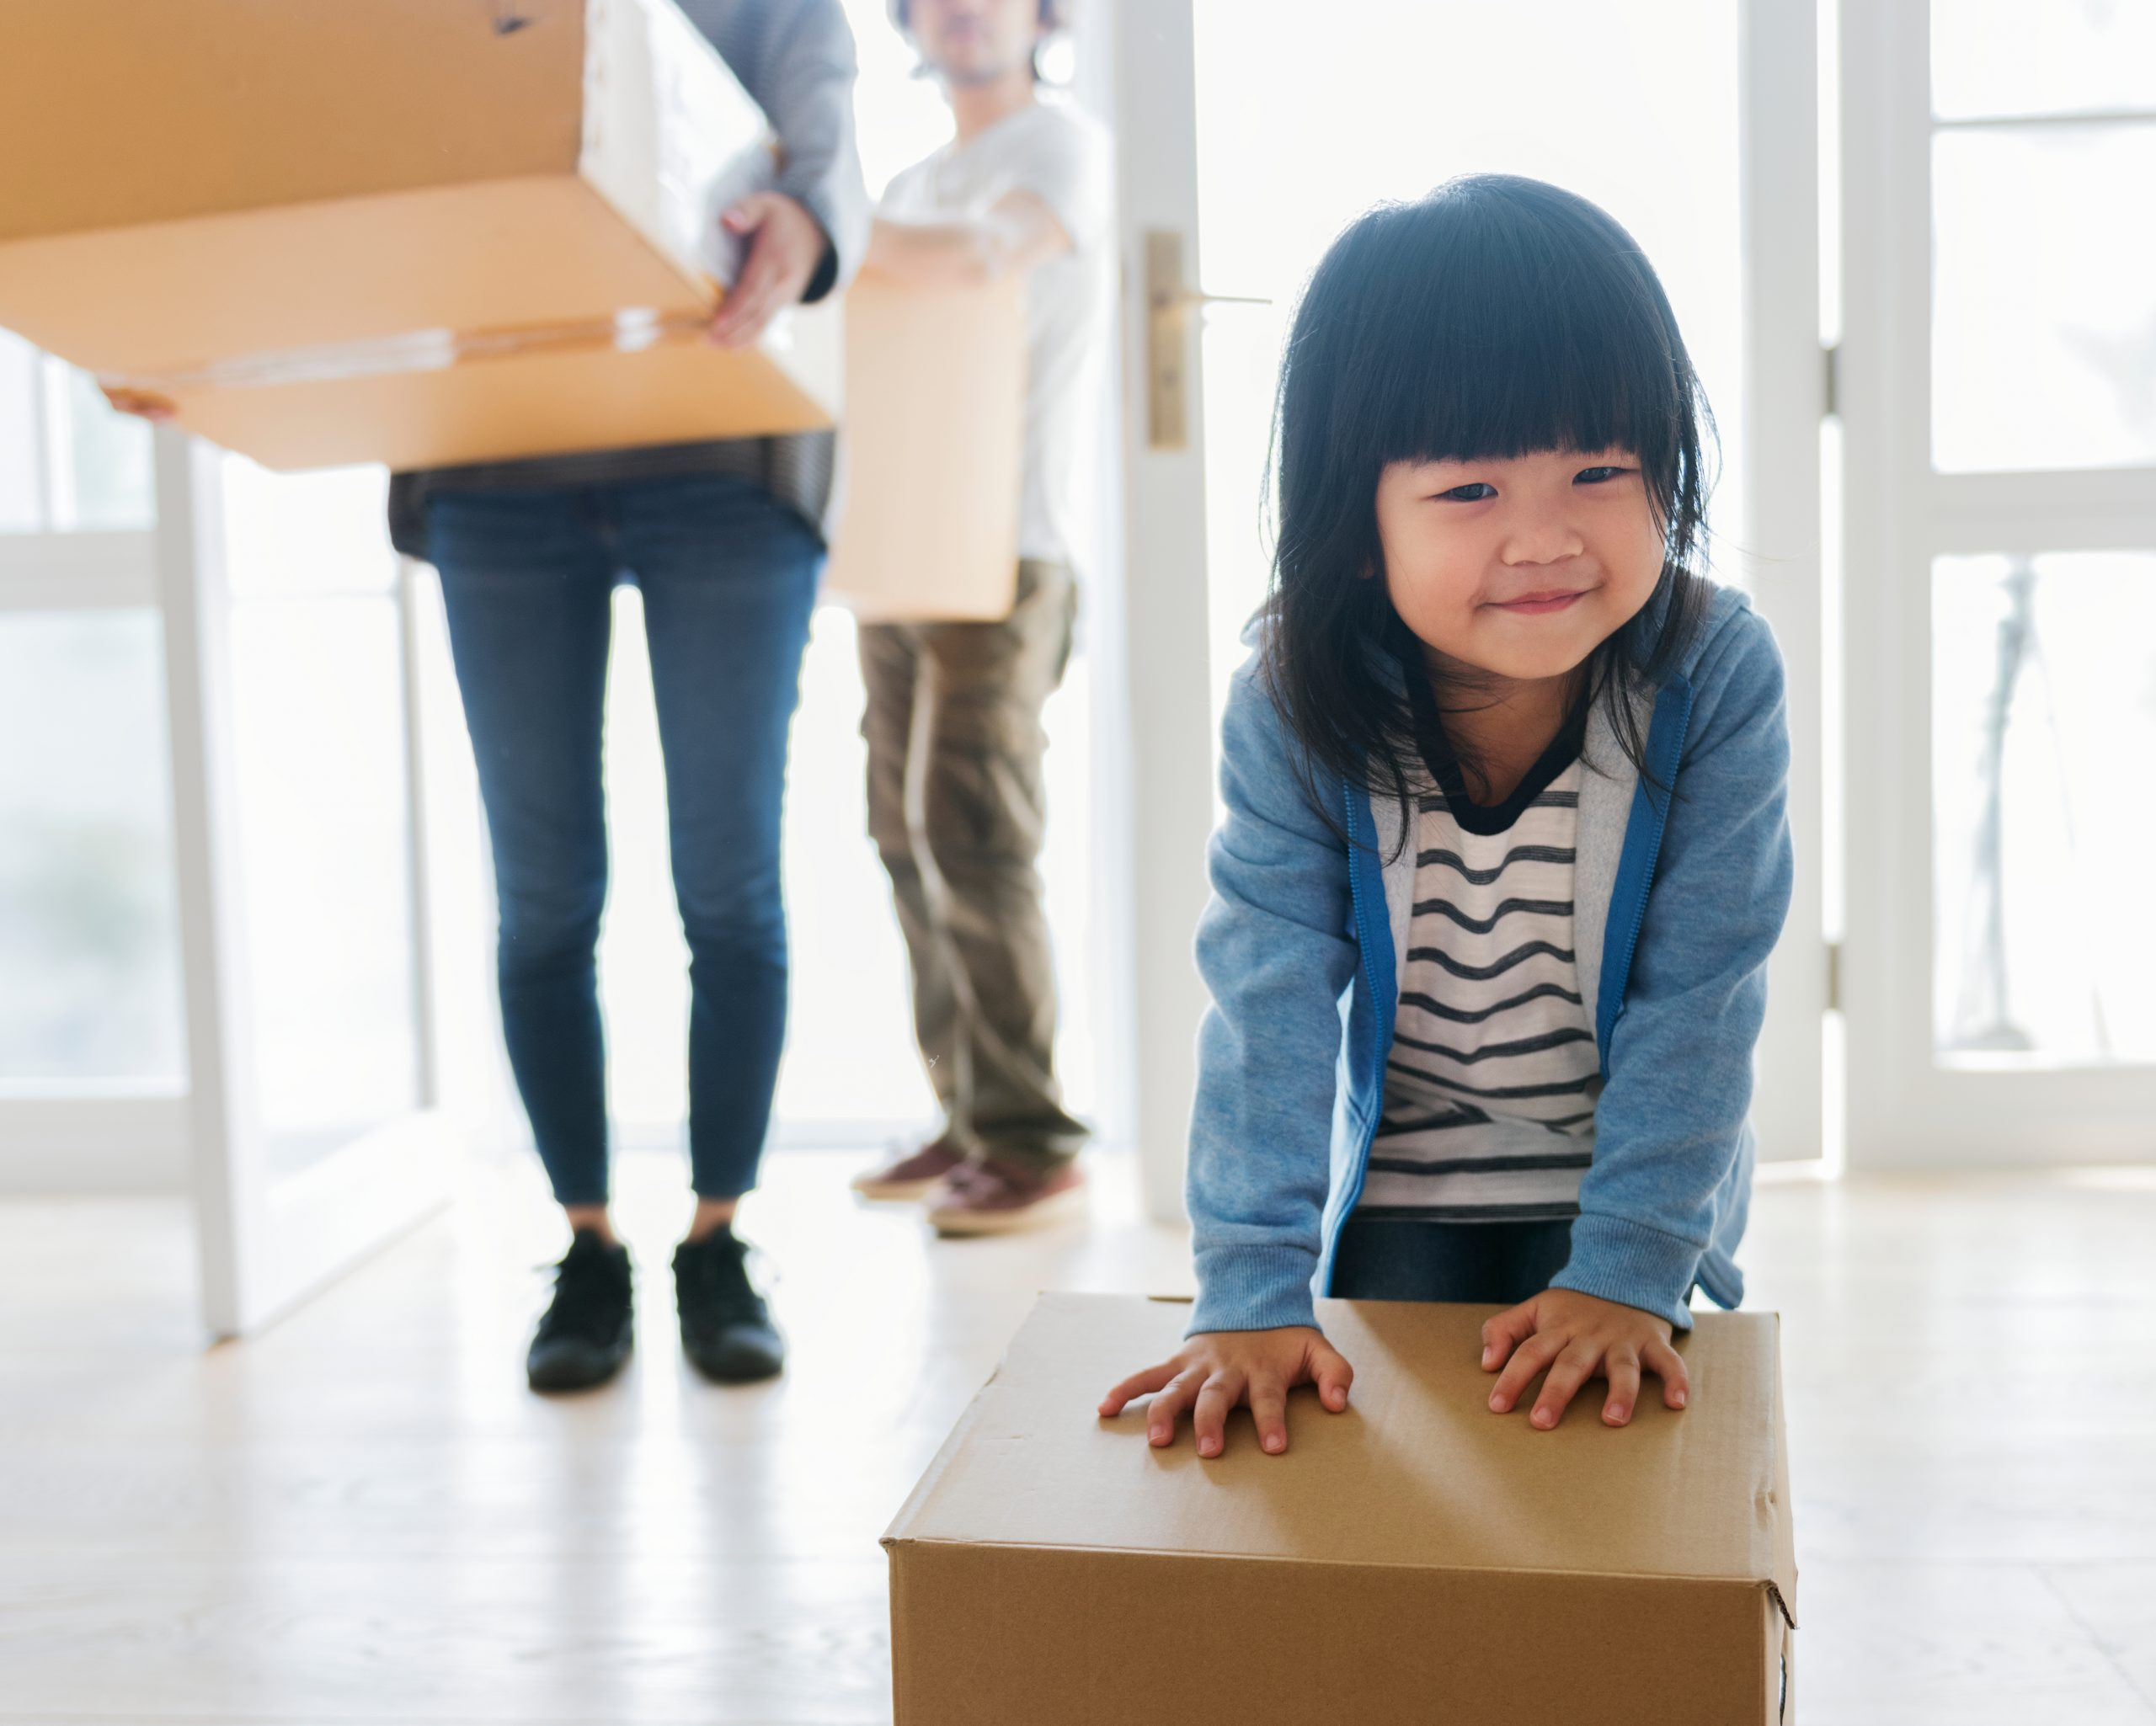 How To Downsize Your Home: 10 Tips From Professional Organizers